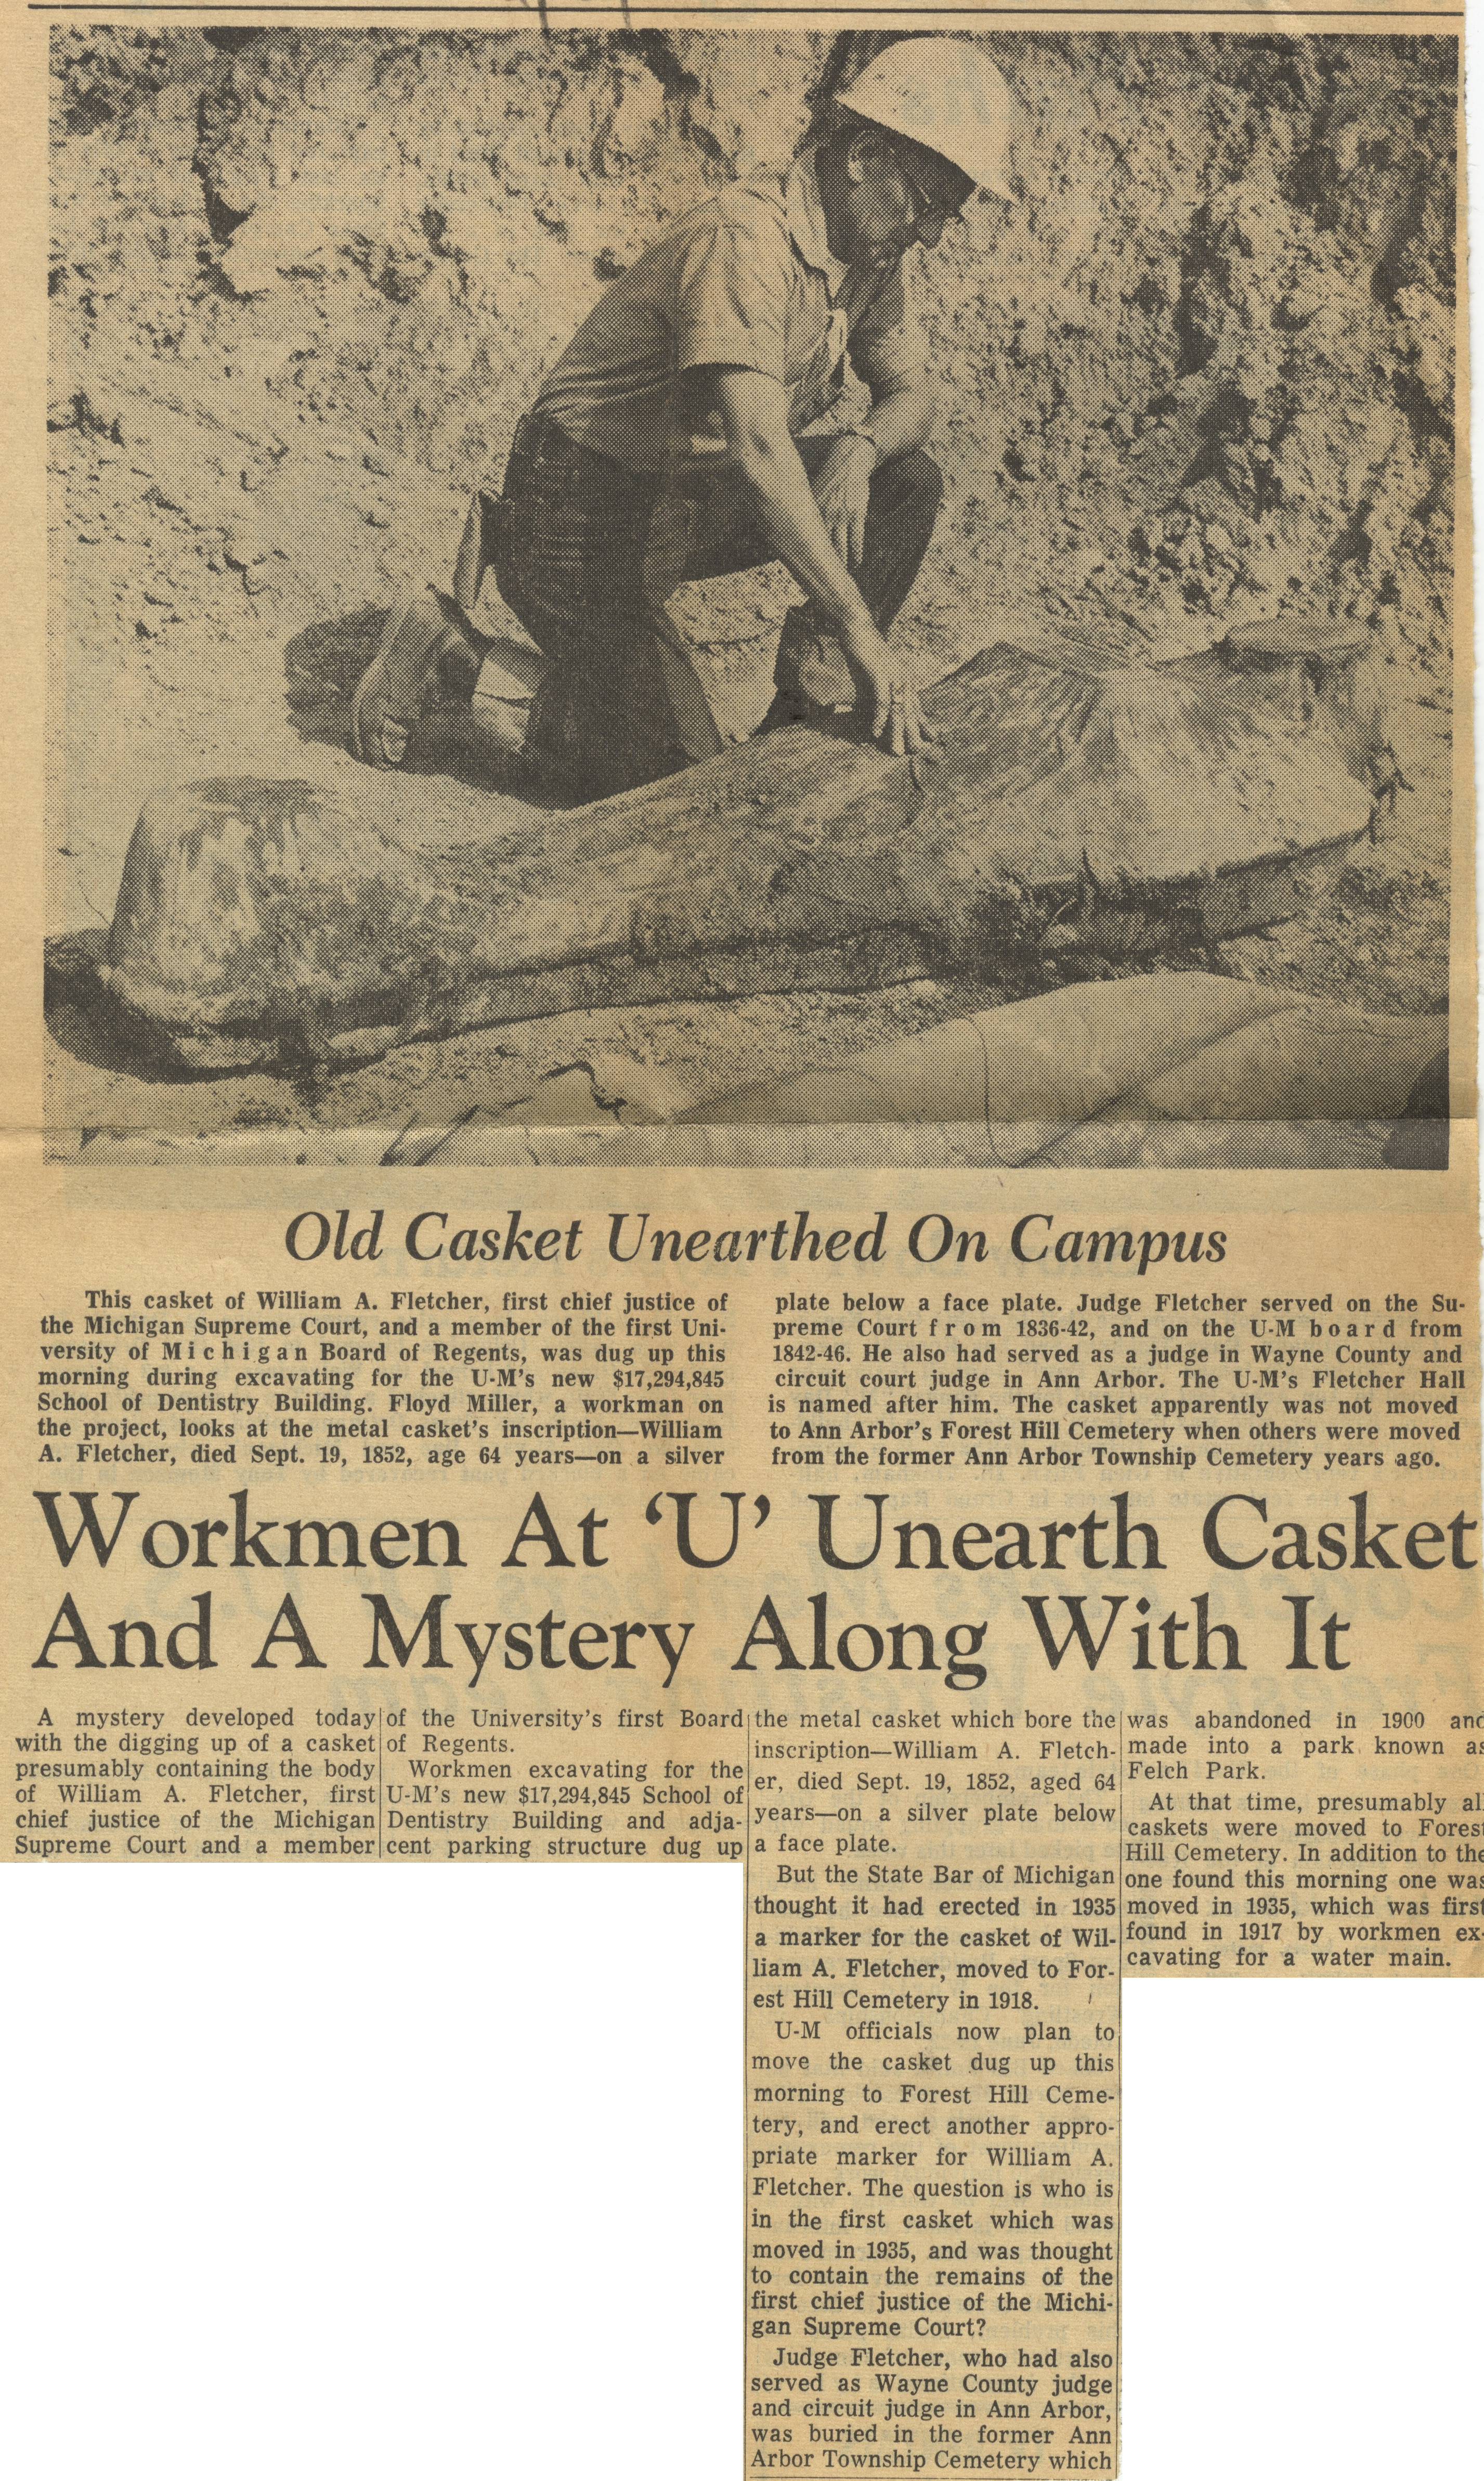 Workmen At 'U' Unearth Casket And A Mystery Along With It image